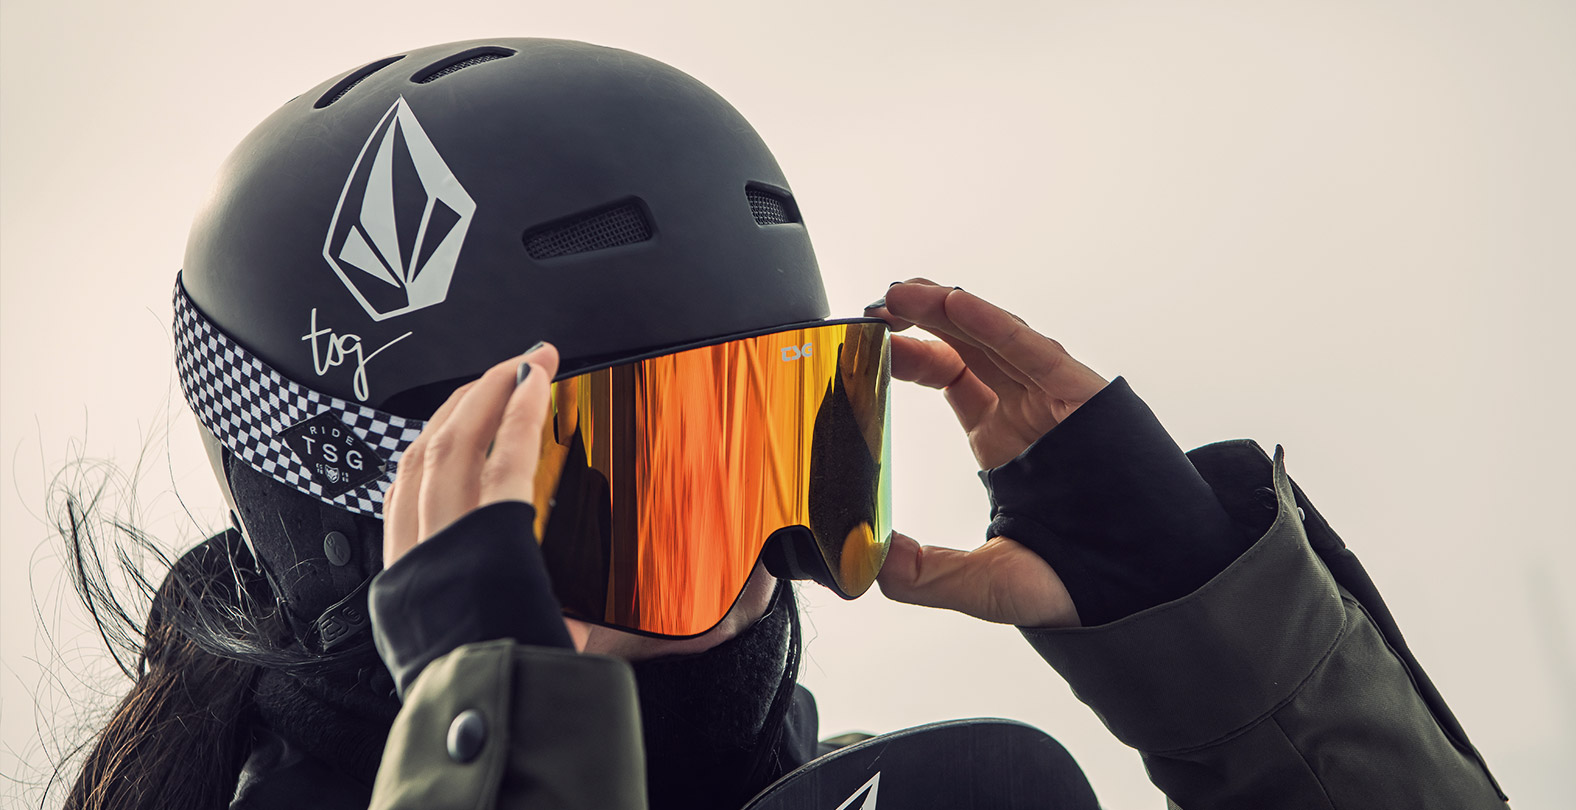 TSG Goggle Four Magnetic Lens